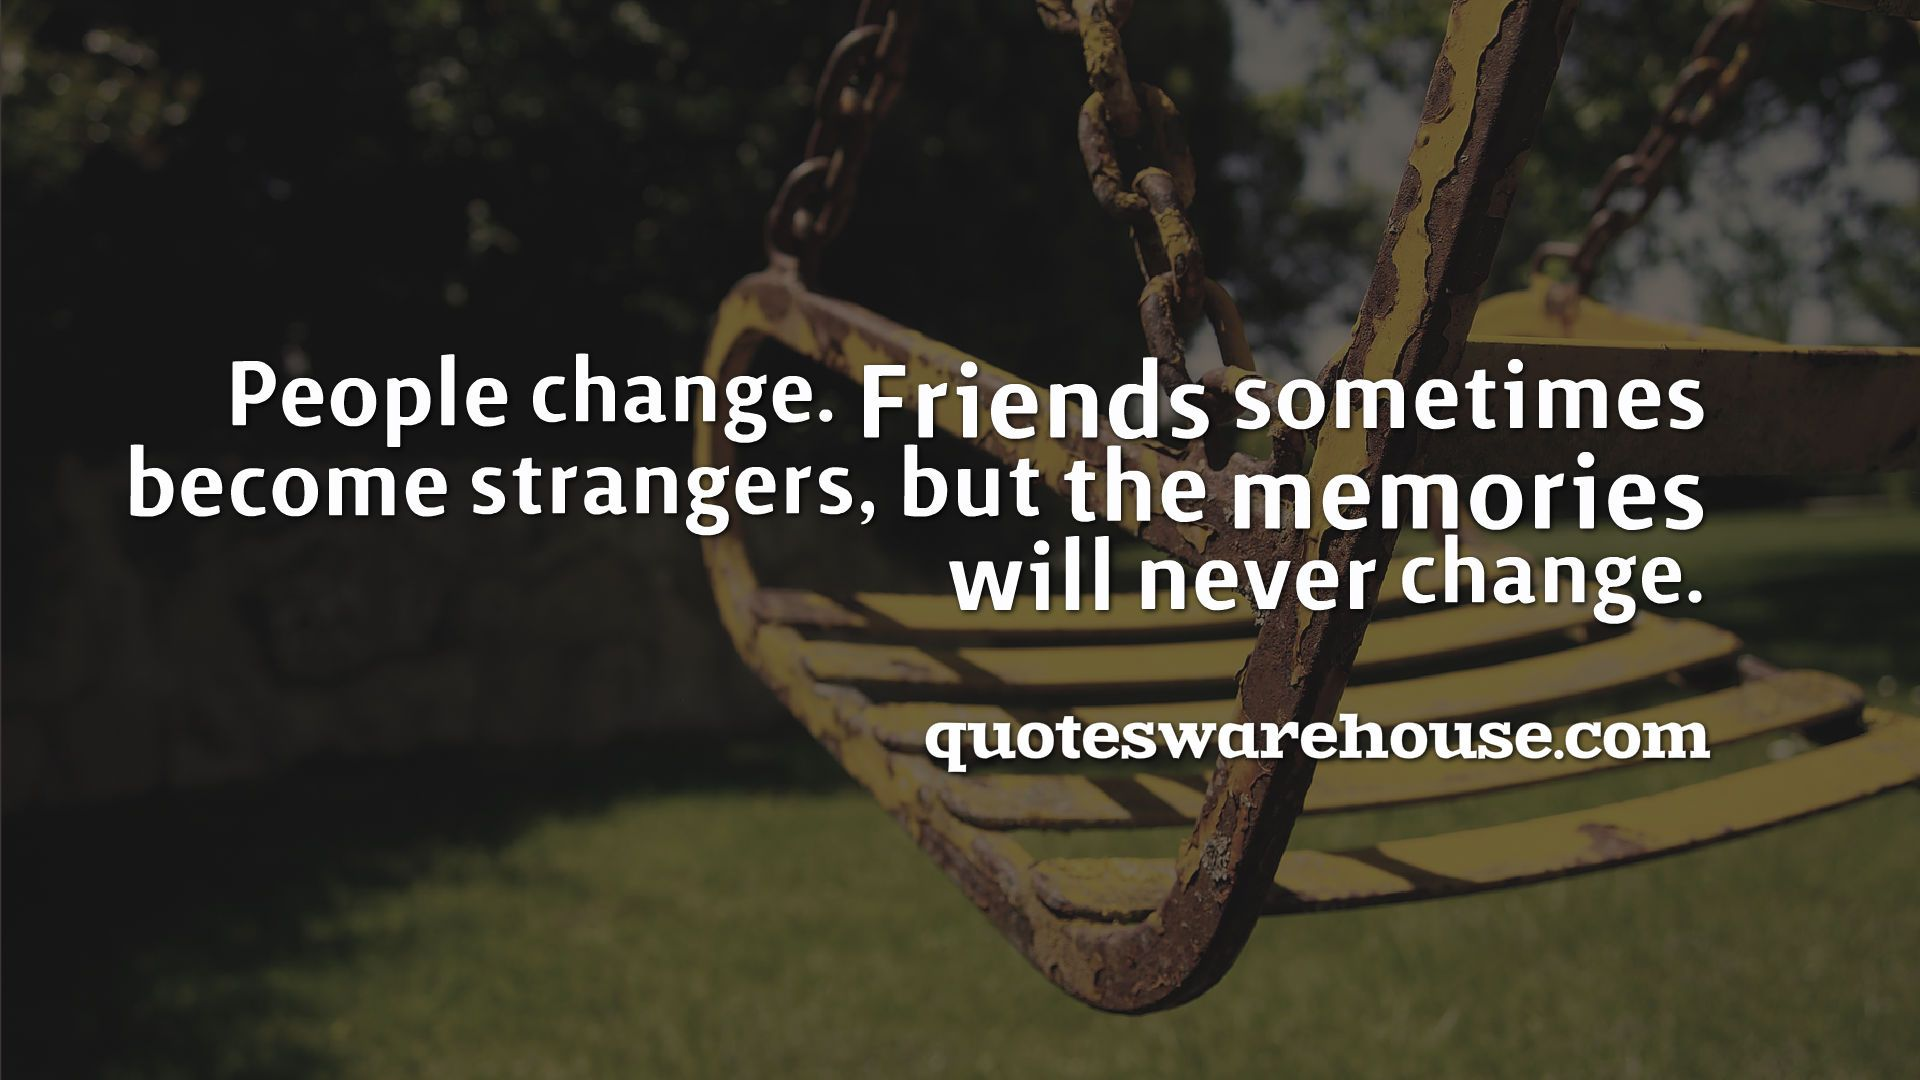 Quotes With Images About About Broken Friendship